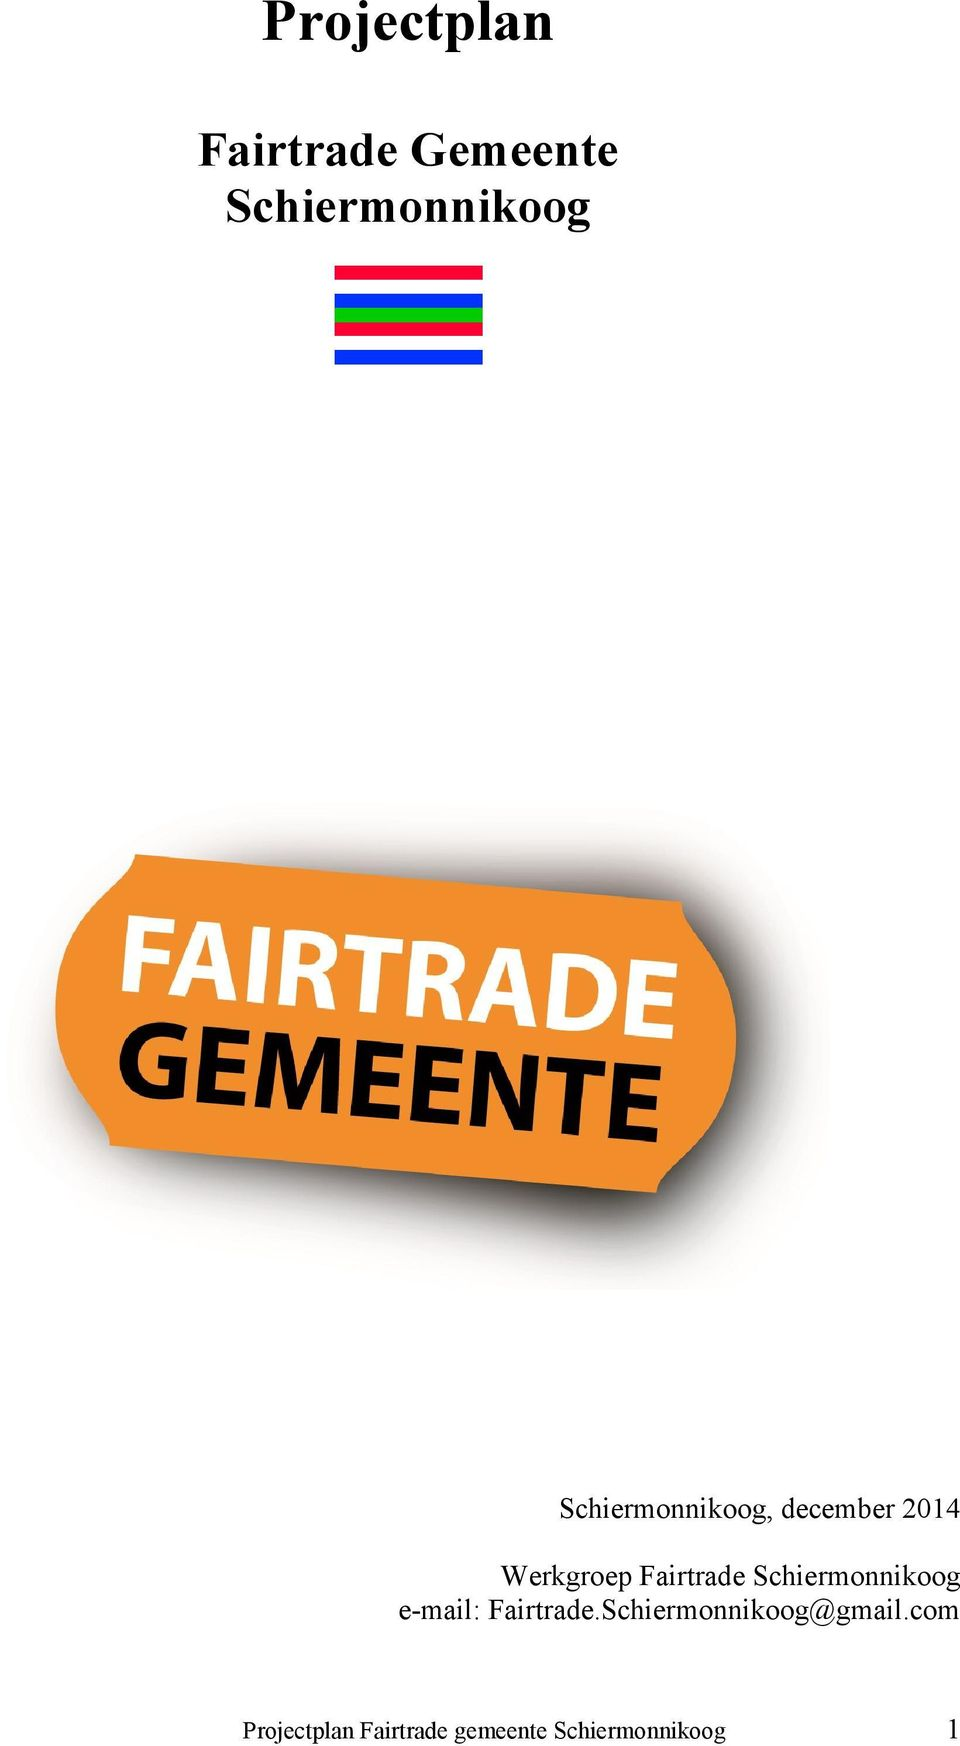 Schiermonnikoog e-mail: Fairtrade.